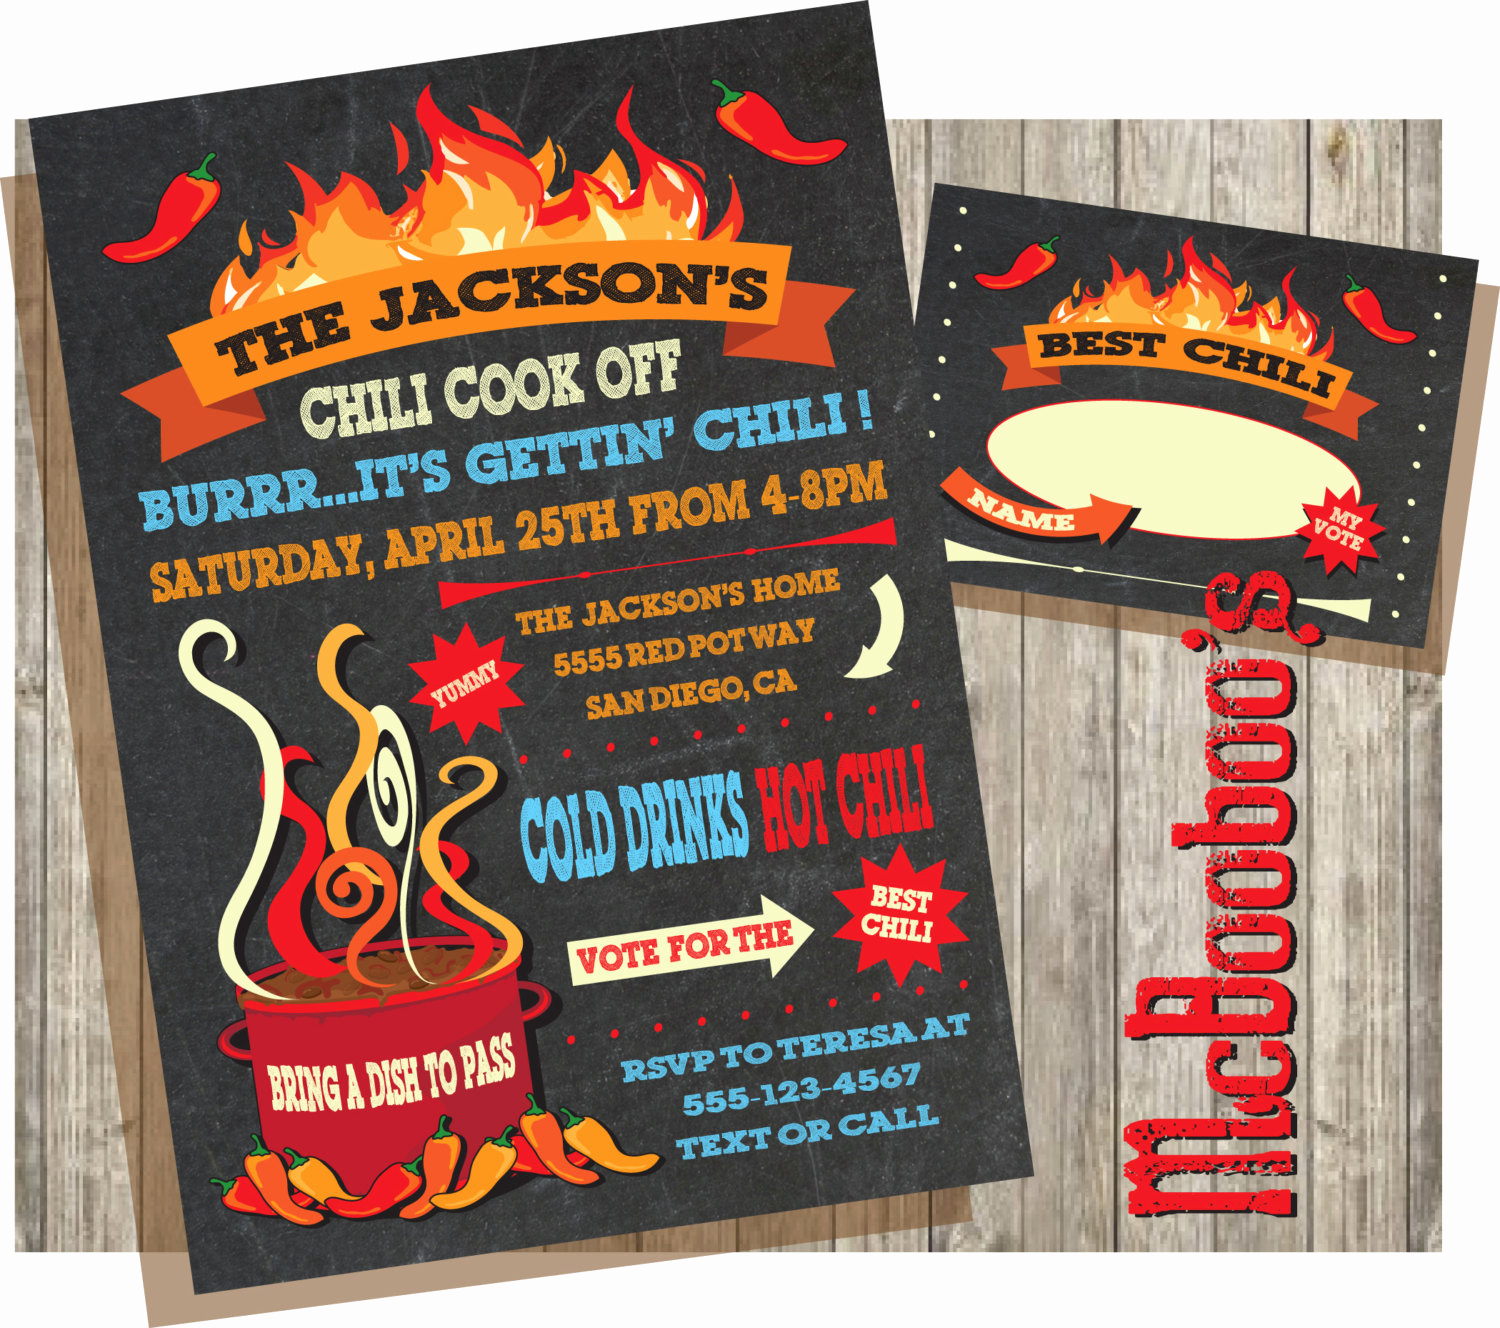 Chili Cook Off Invitation Elegant Chili Cook Off Invitations On A Chalkboard Background